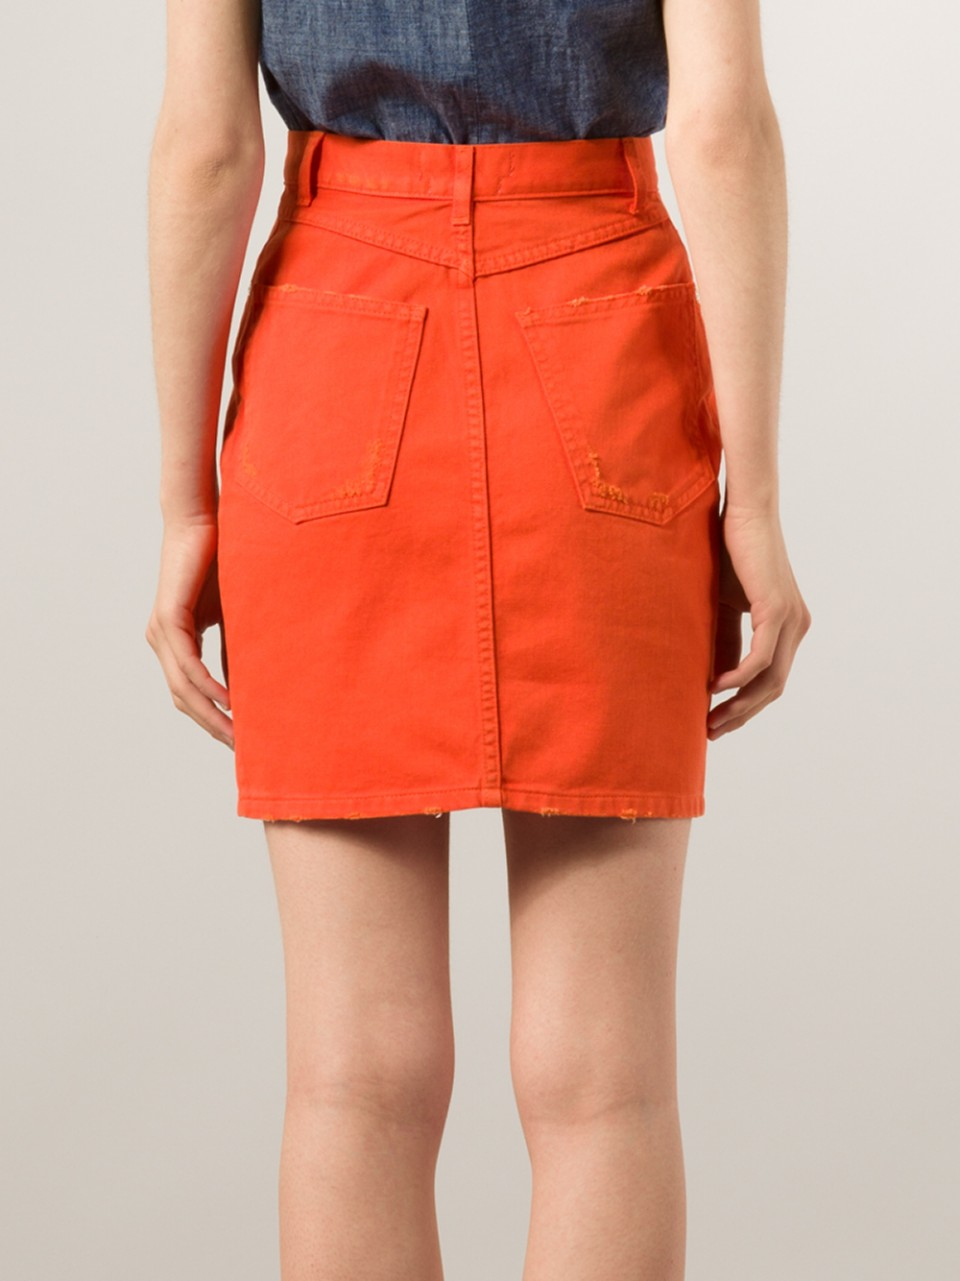 Msgm Button Front Denim Skirt in Orange | Lyst